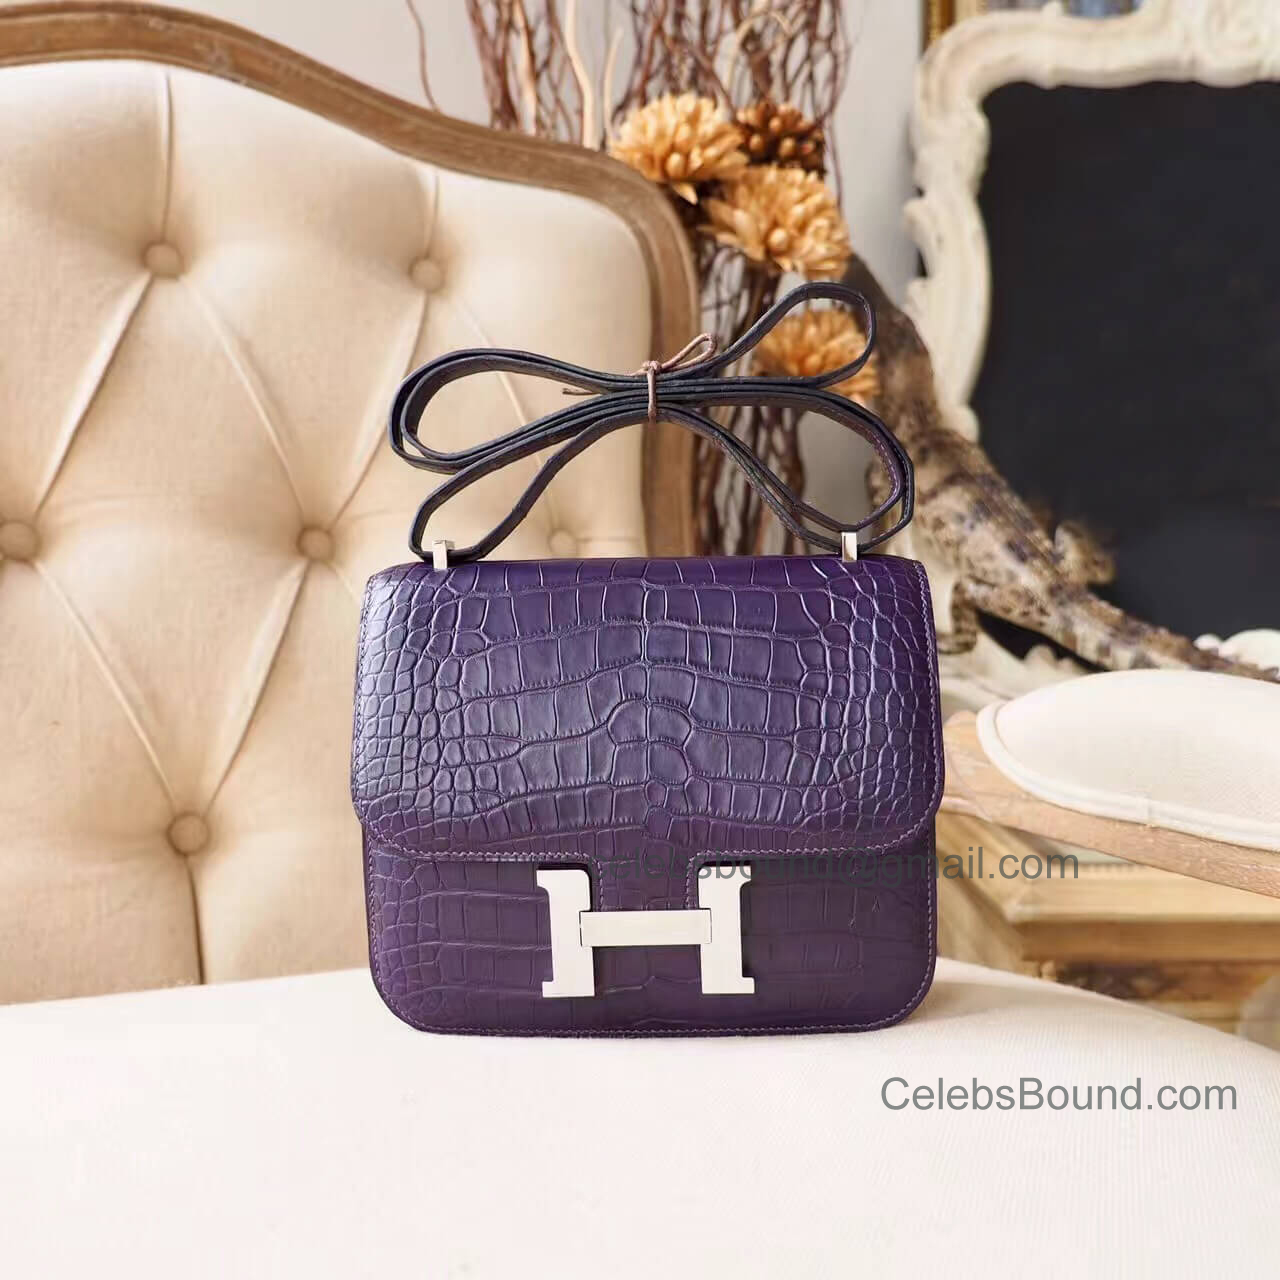 Replica Hermes Mini Constance 18 Bag in 9k Iris Matte Alligator PHW